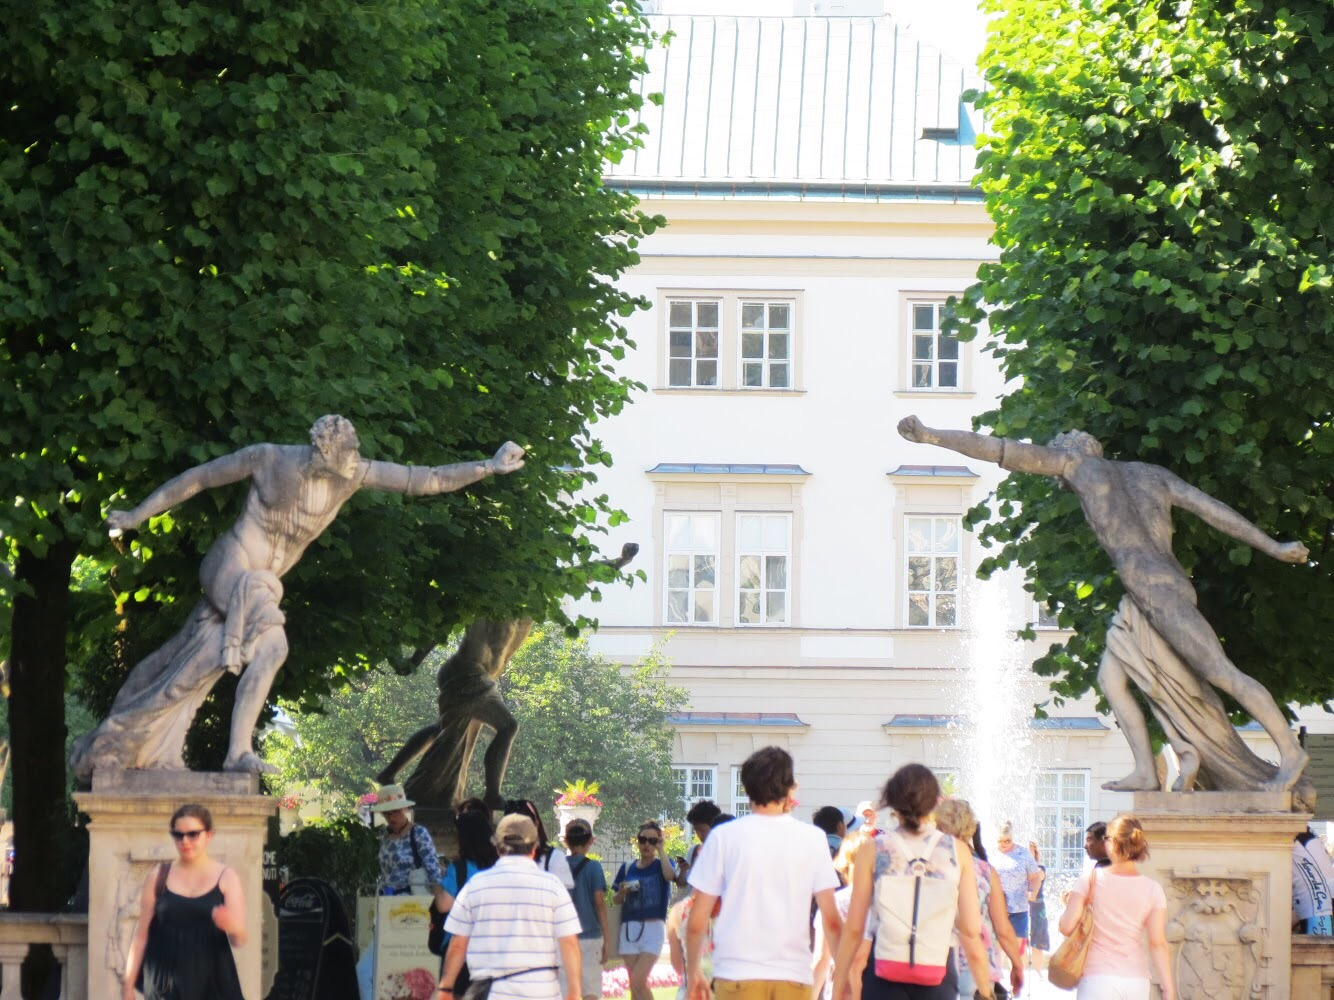 How To Spend 5 Hours In Salzburg, Austria